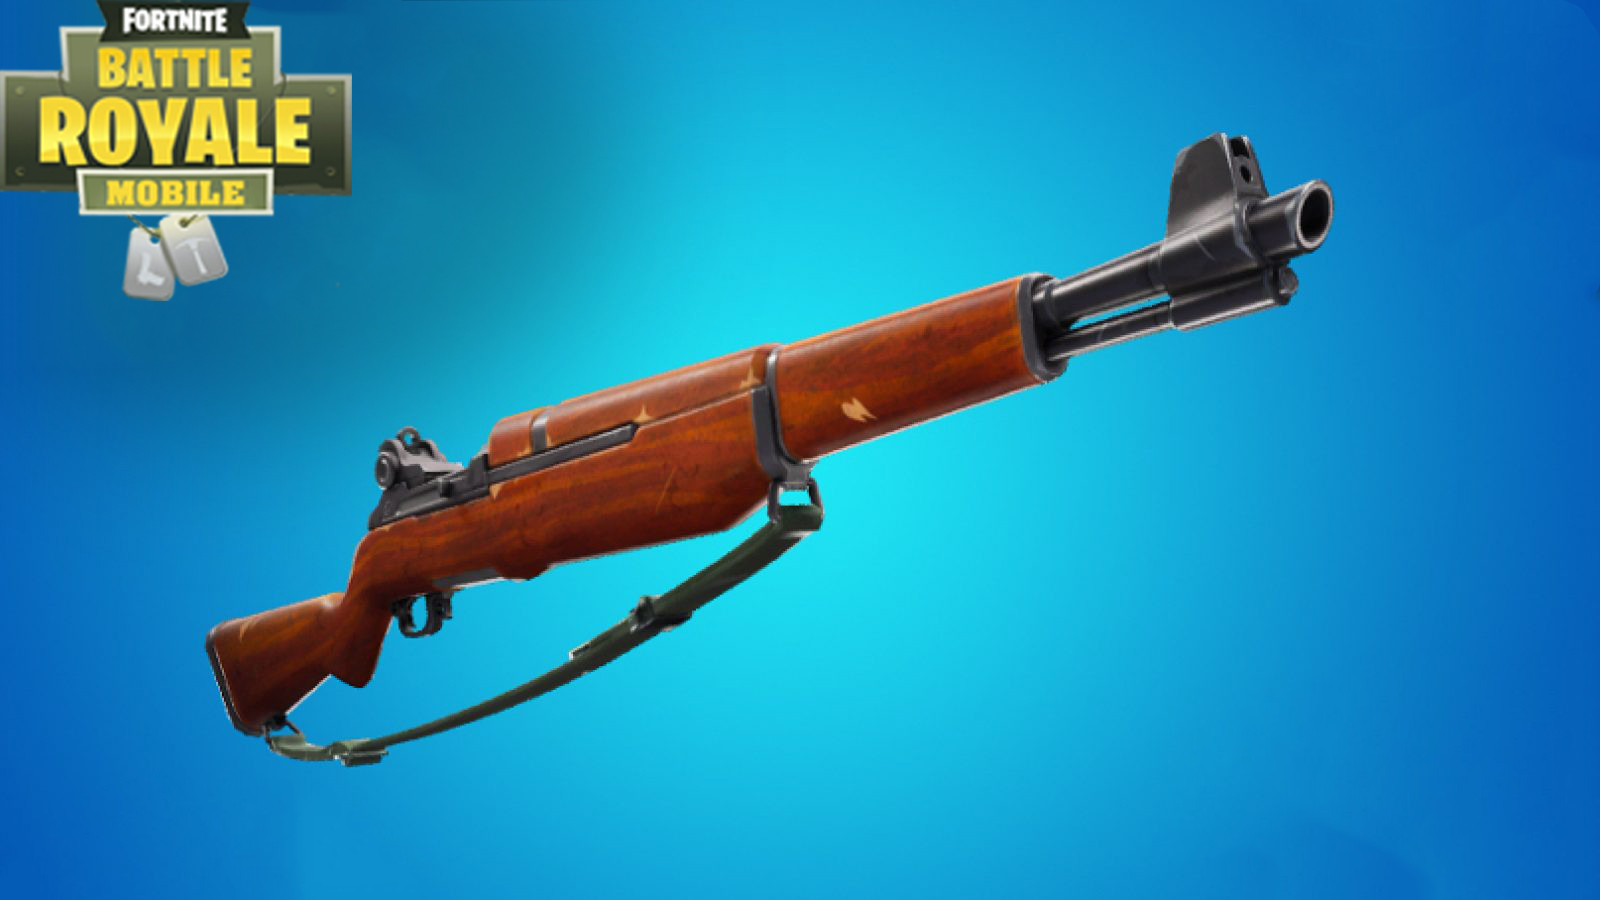 Infantry Rifle | Fortnite - zilliongamer